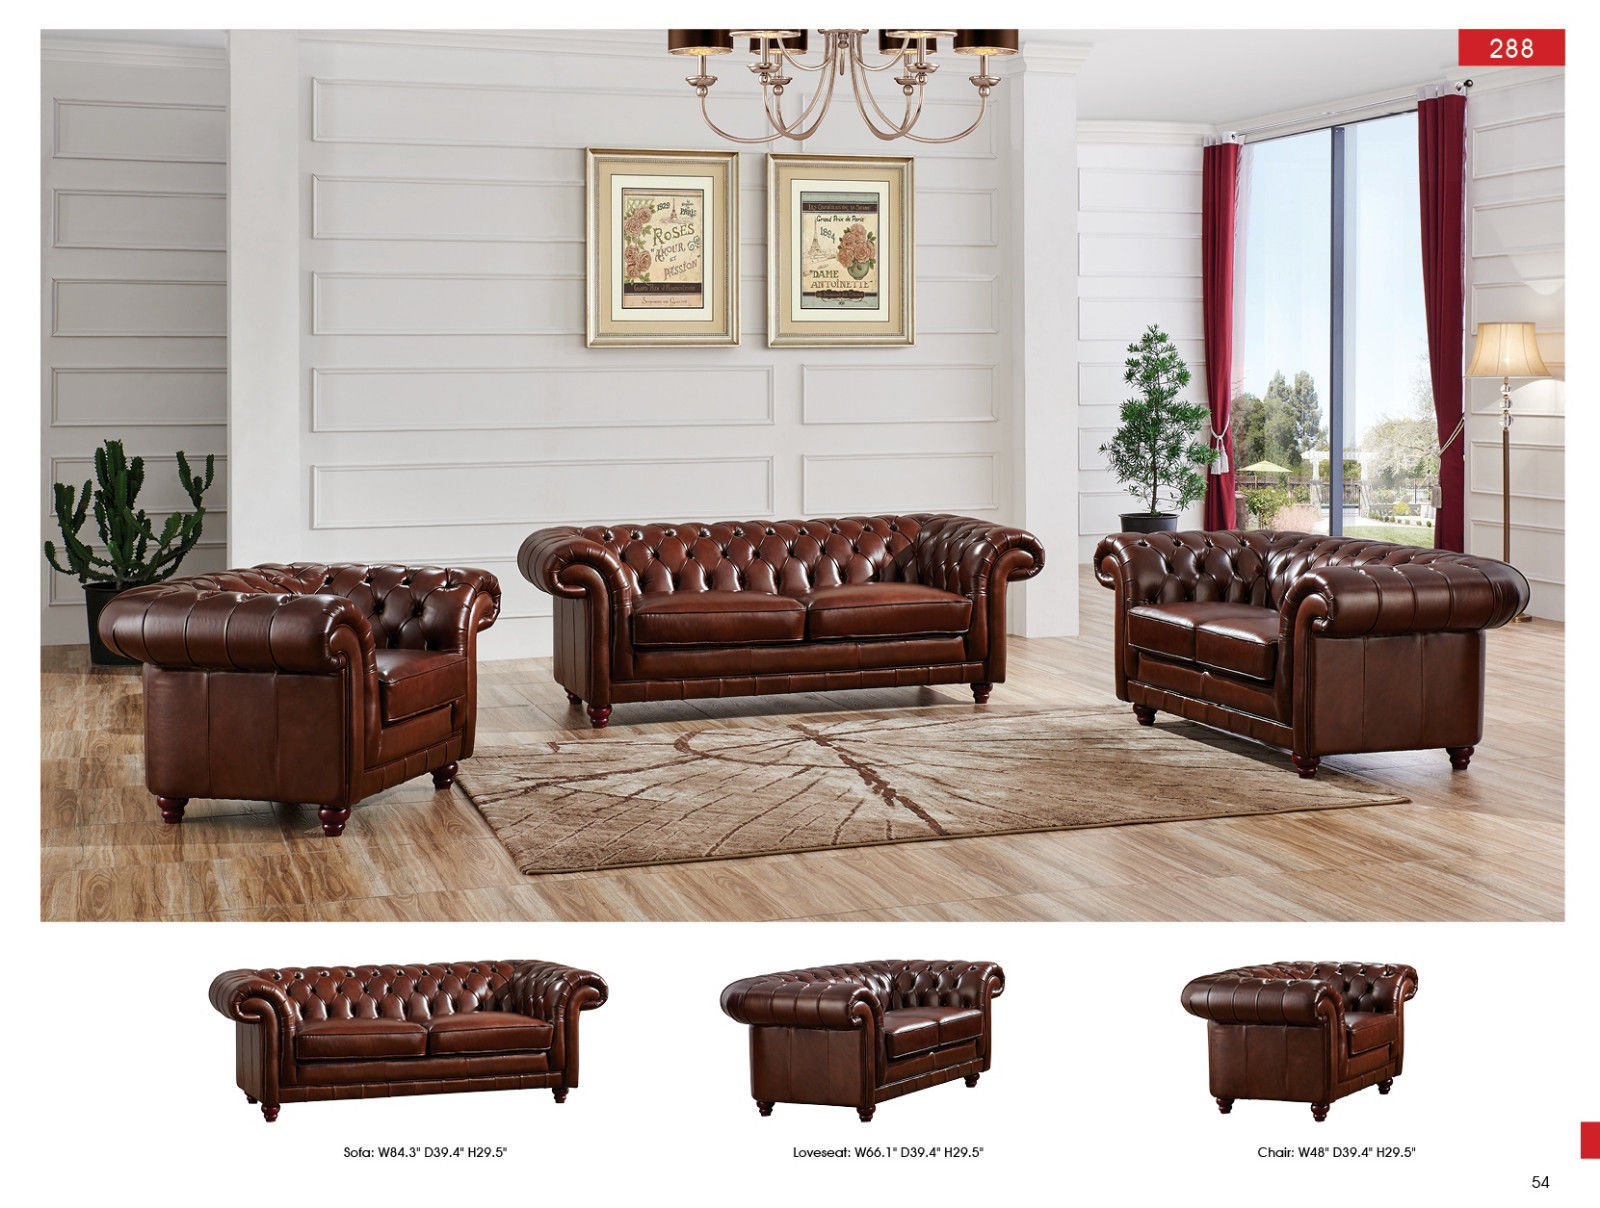 ESF 288 Italian Leather Living Room Sofa Set 3pc. Tufted Brown Traditional Style